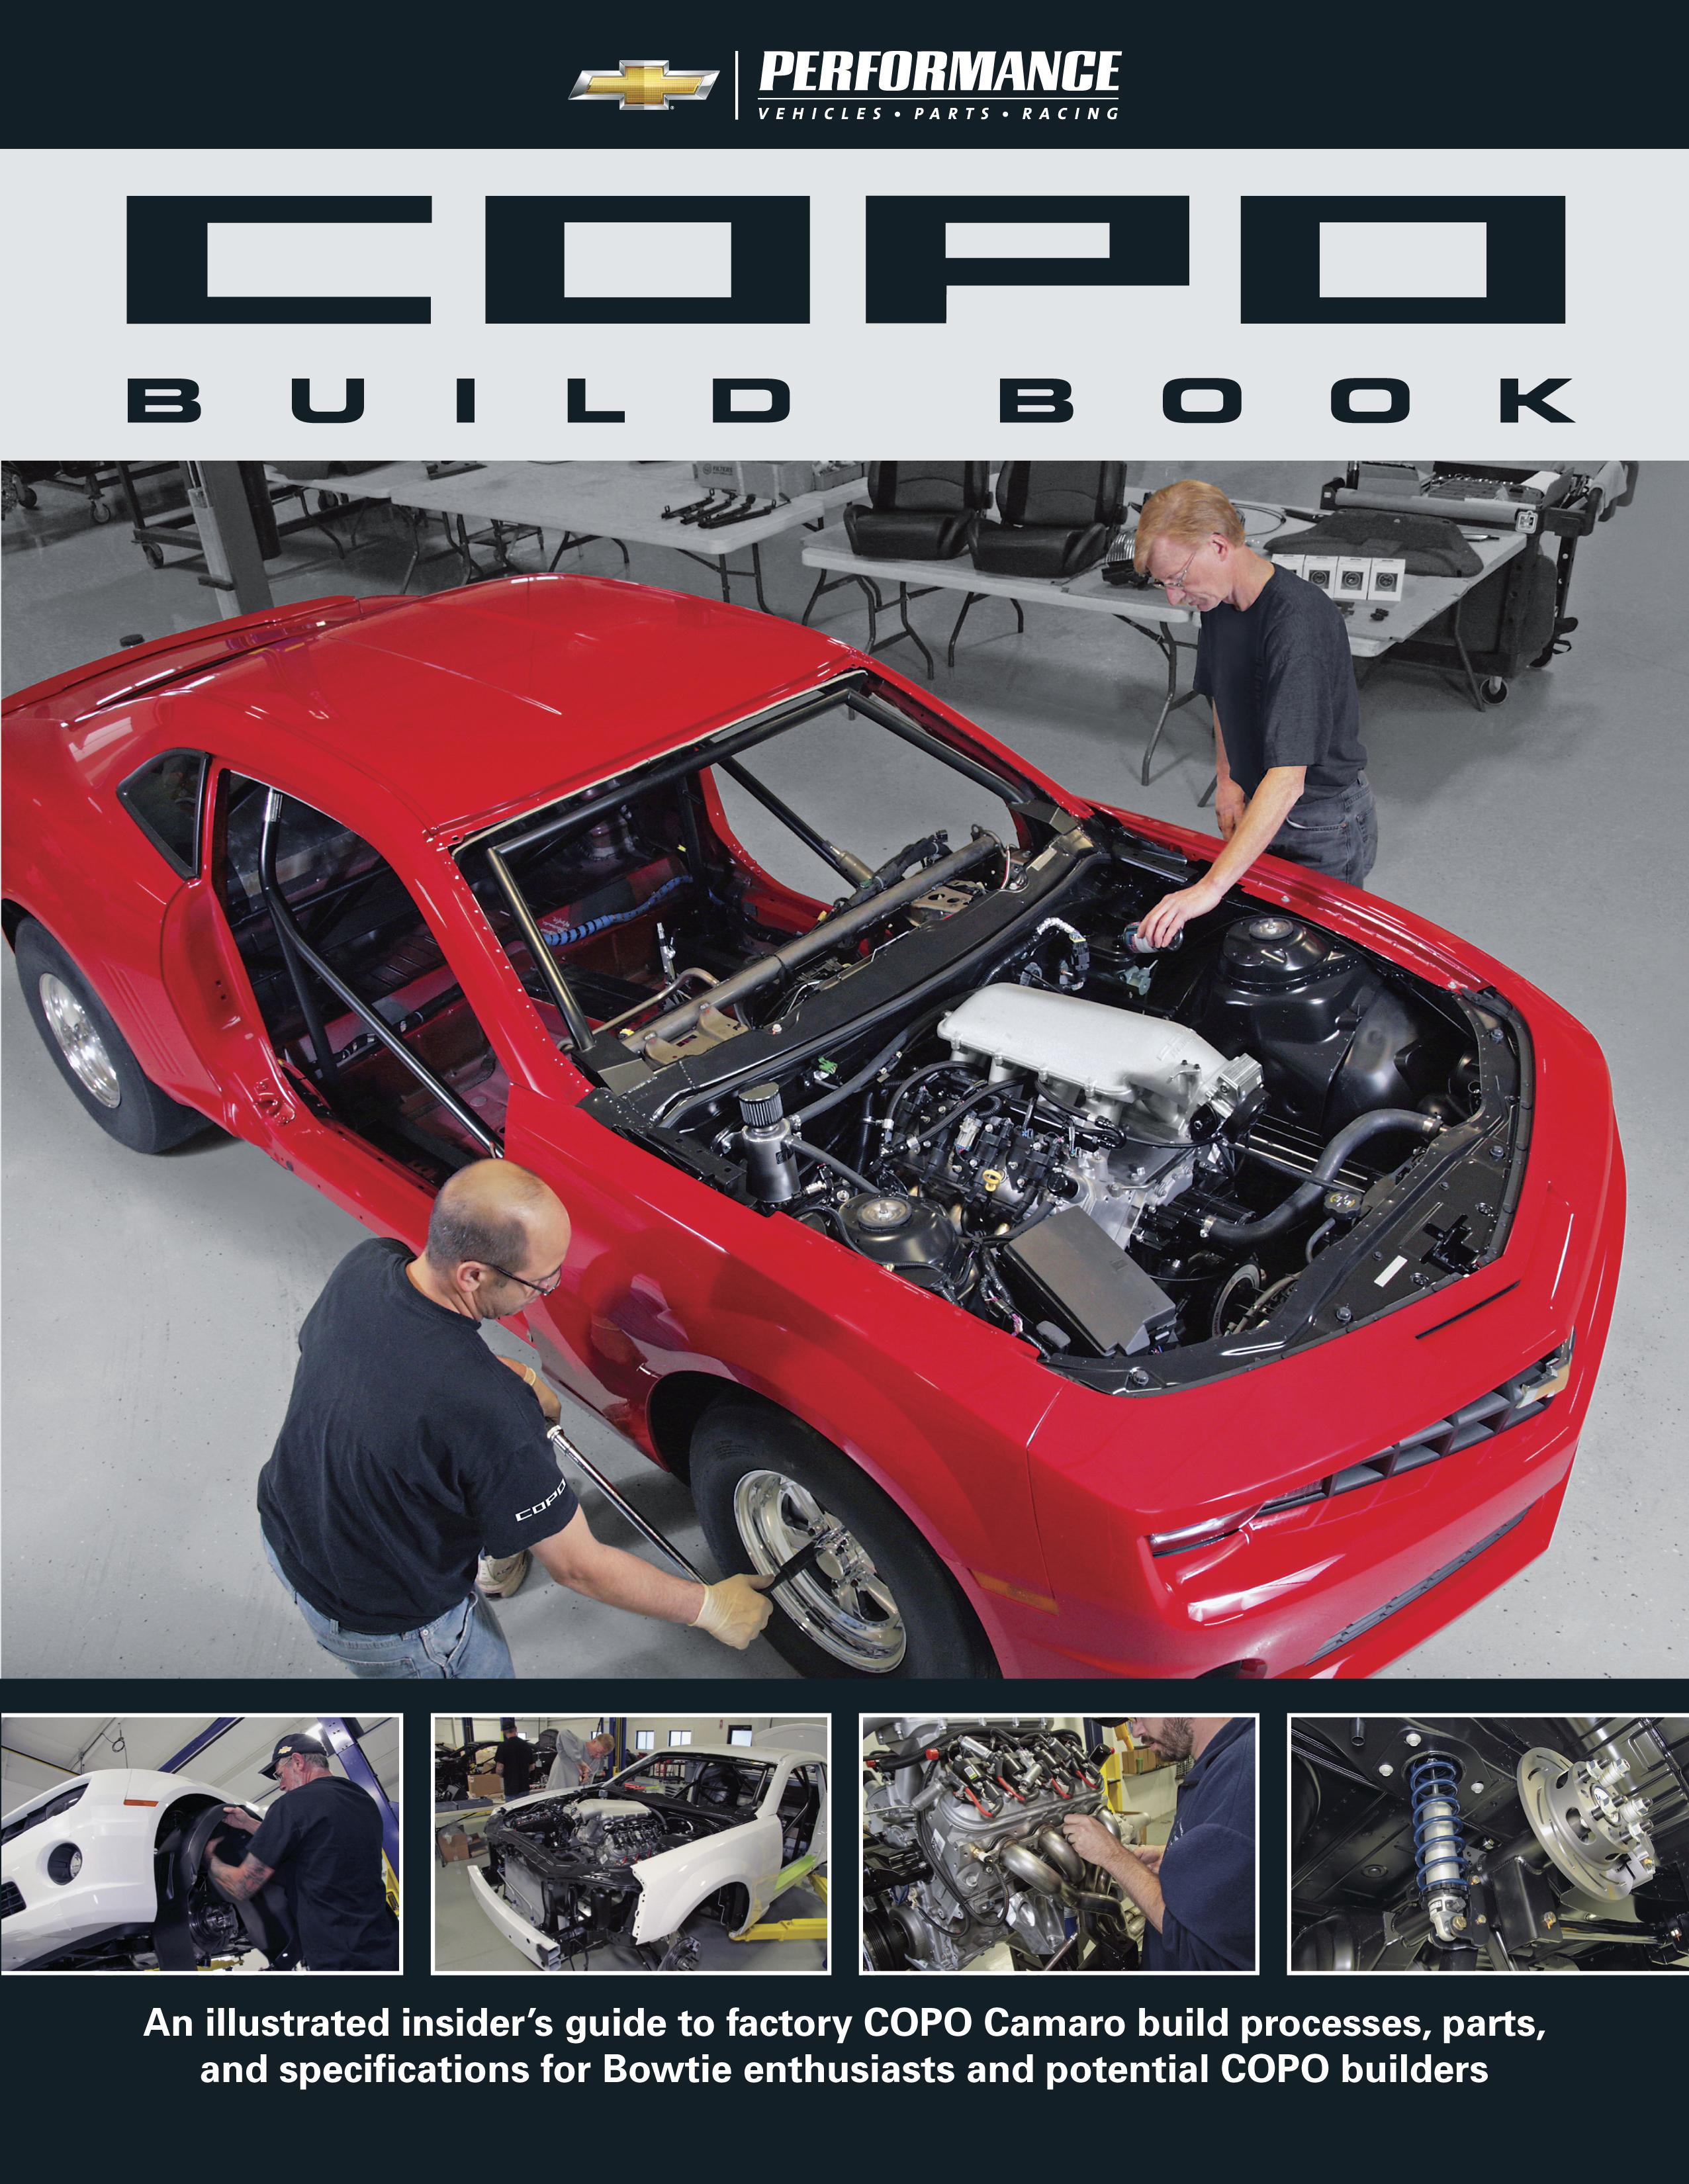 COPO Build Book from Chevrolet Performance shows how to Build your